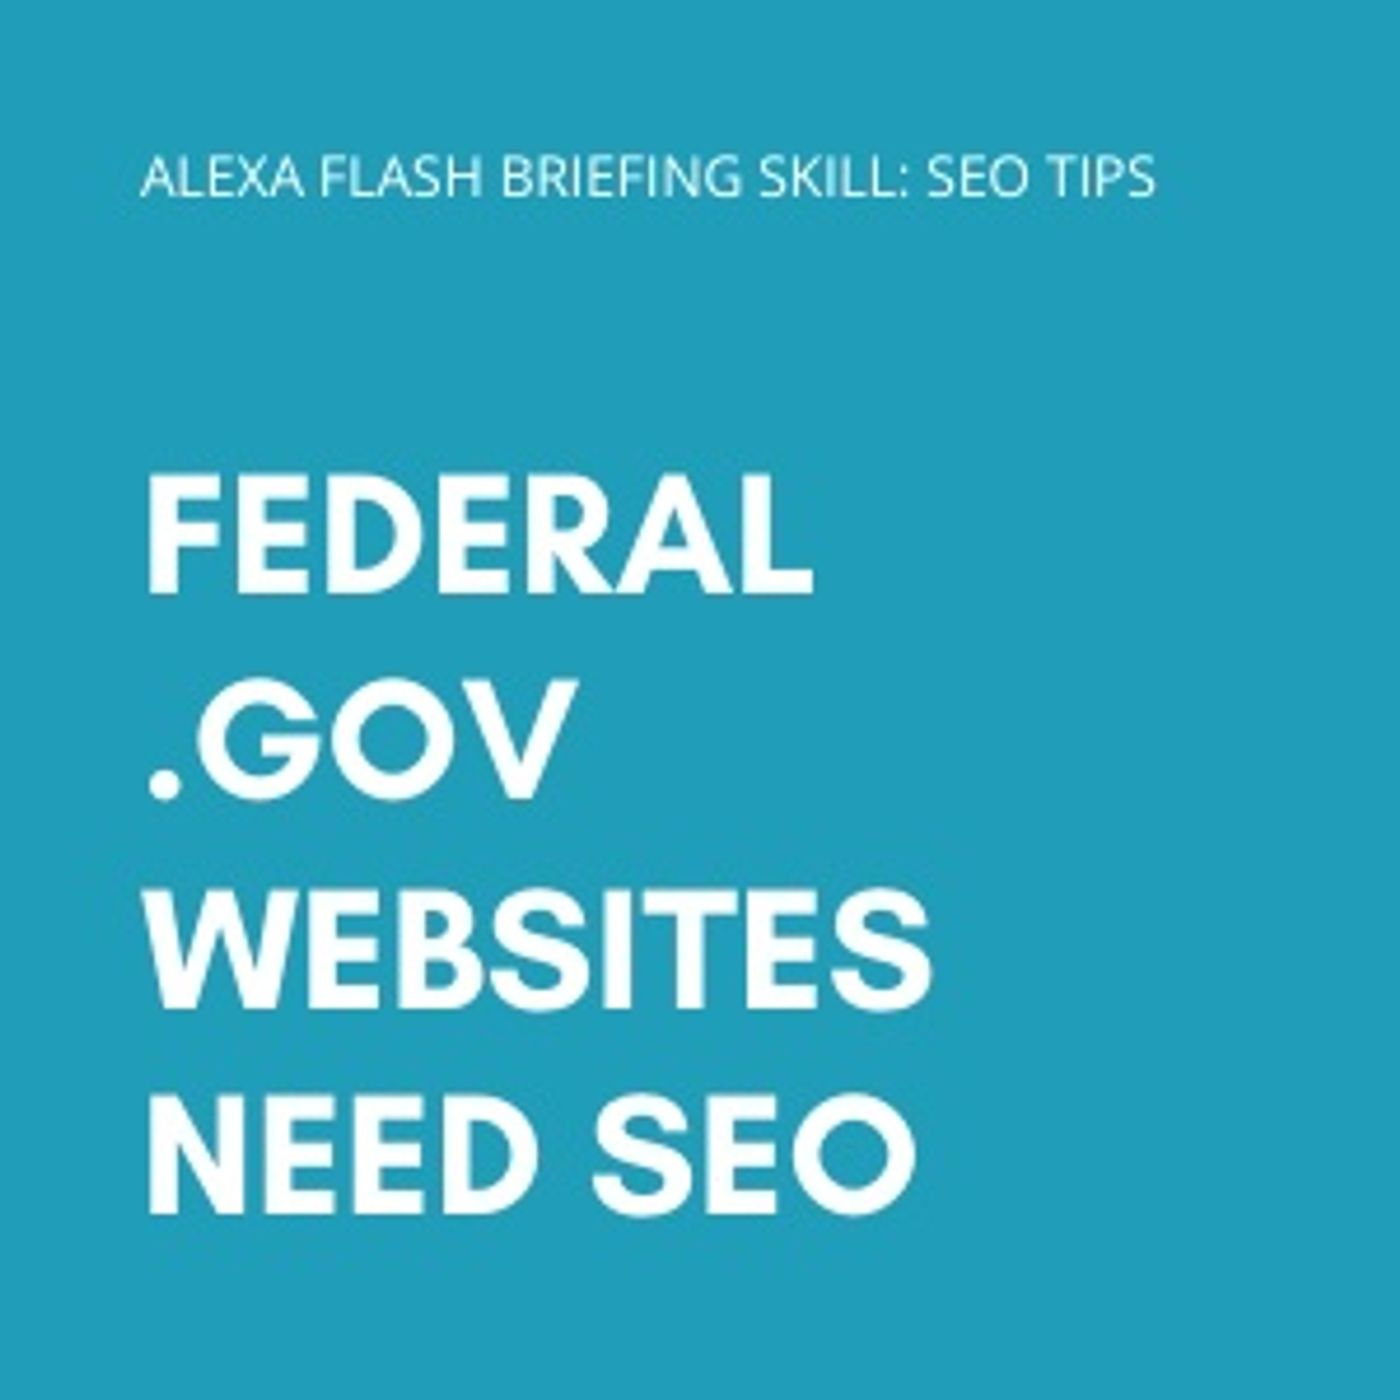 Federal .gov websites need SEO